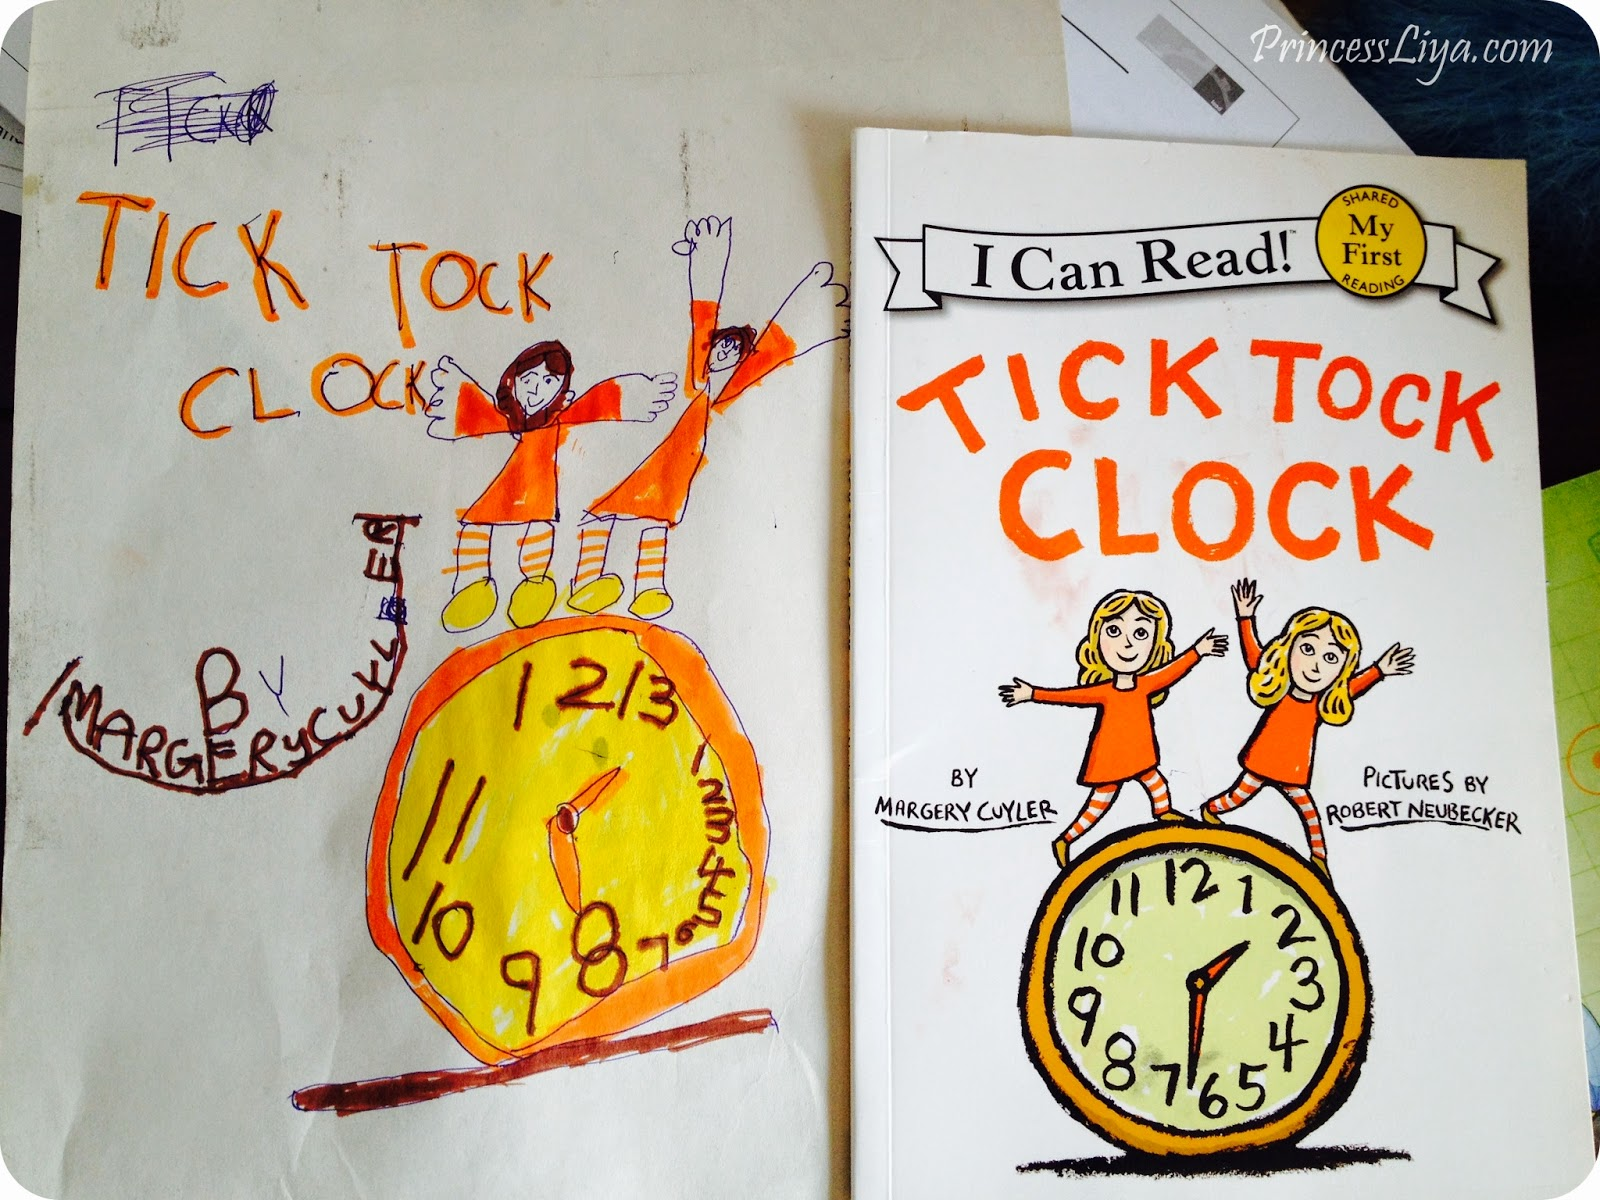 tick tock clock by margery coyler illustration